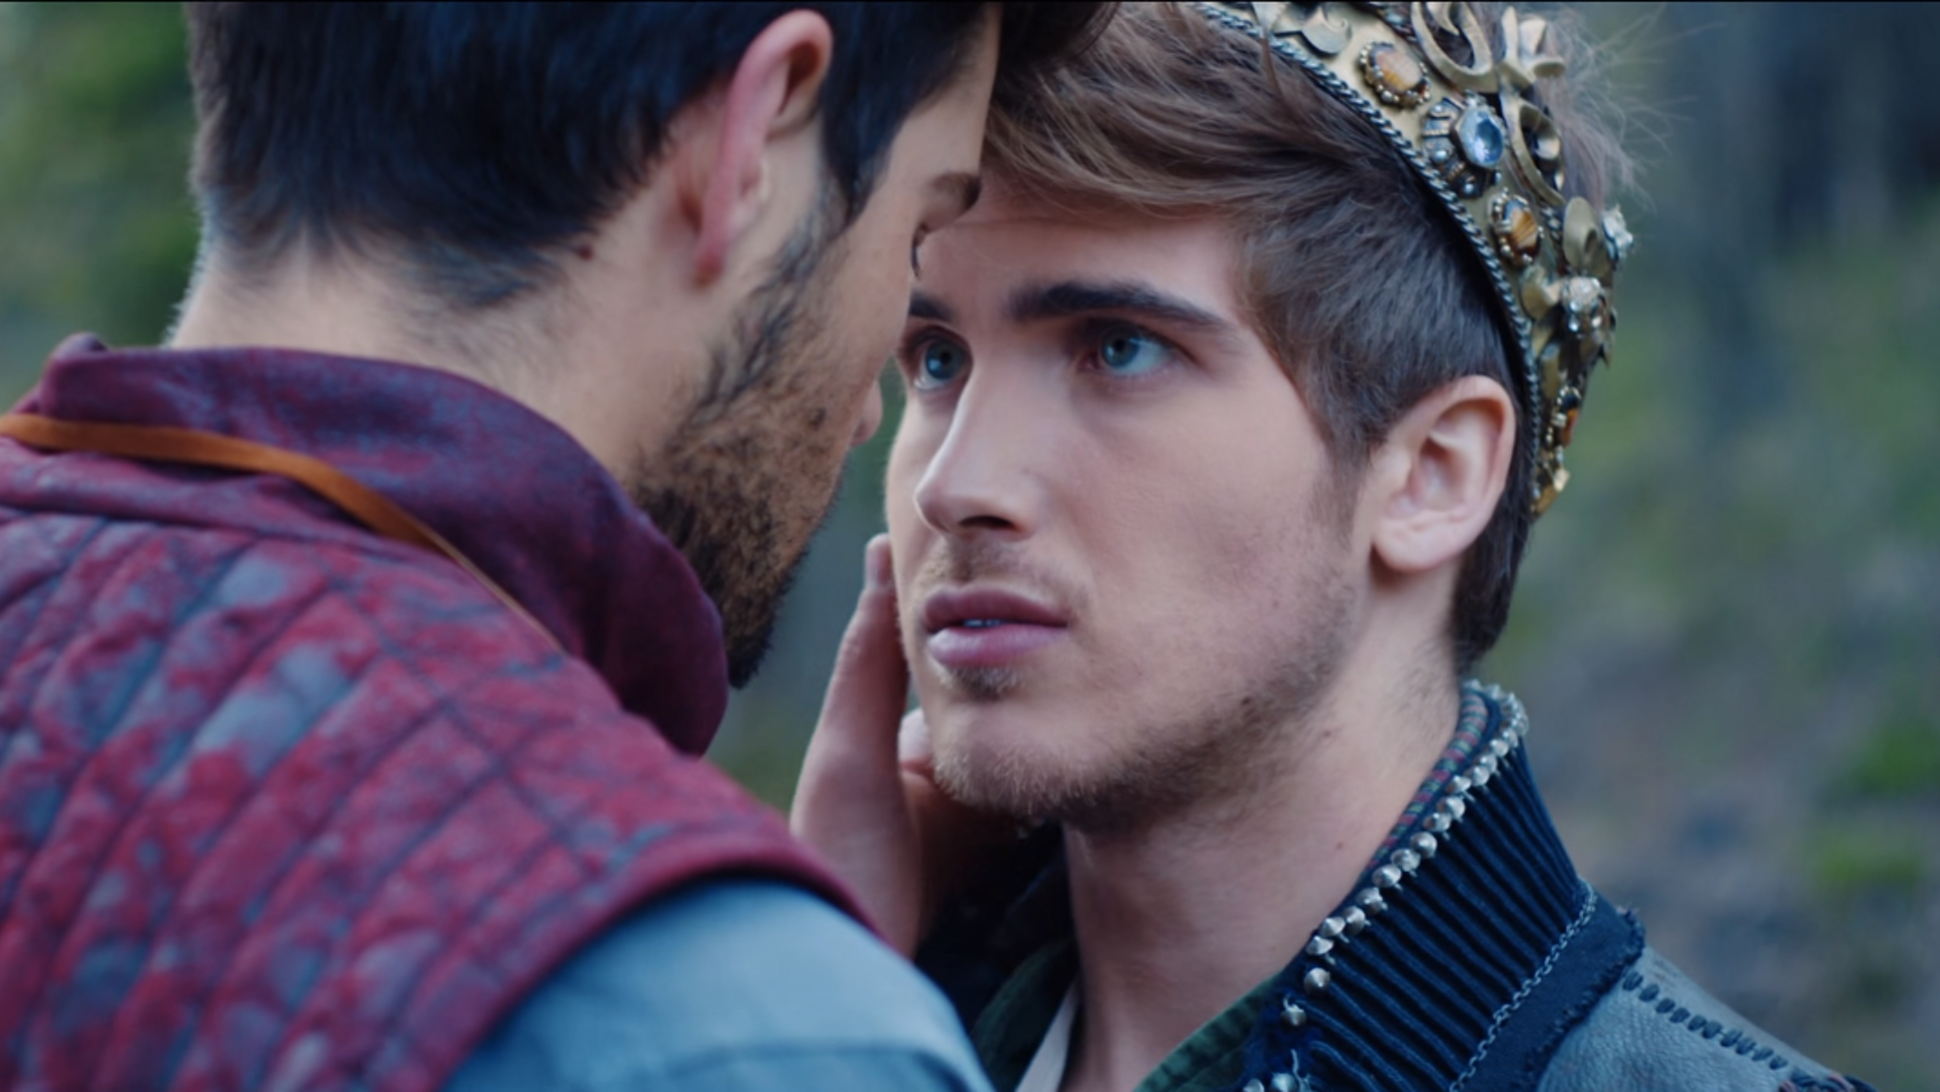 """Joey Graceffa, right, and blogger Daniel Preda, left, in the 2015 music video called """"Don't Wait"""" where Graceffa comes out to his audience as gay. (Photo courtesy of Bustle)"""